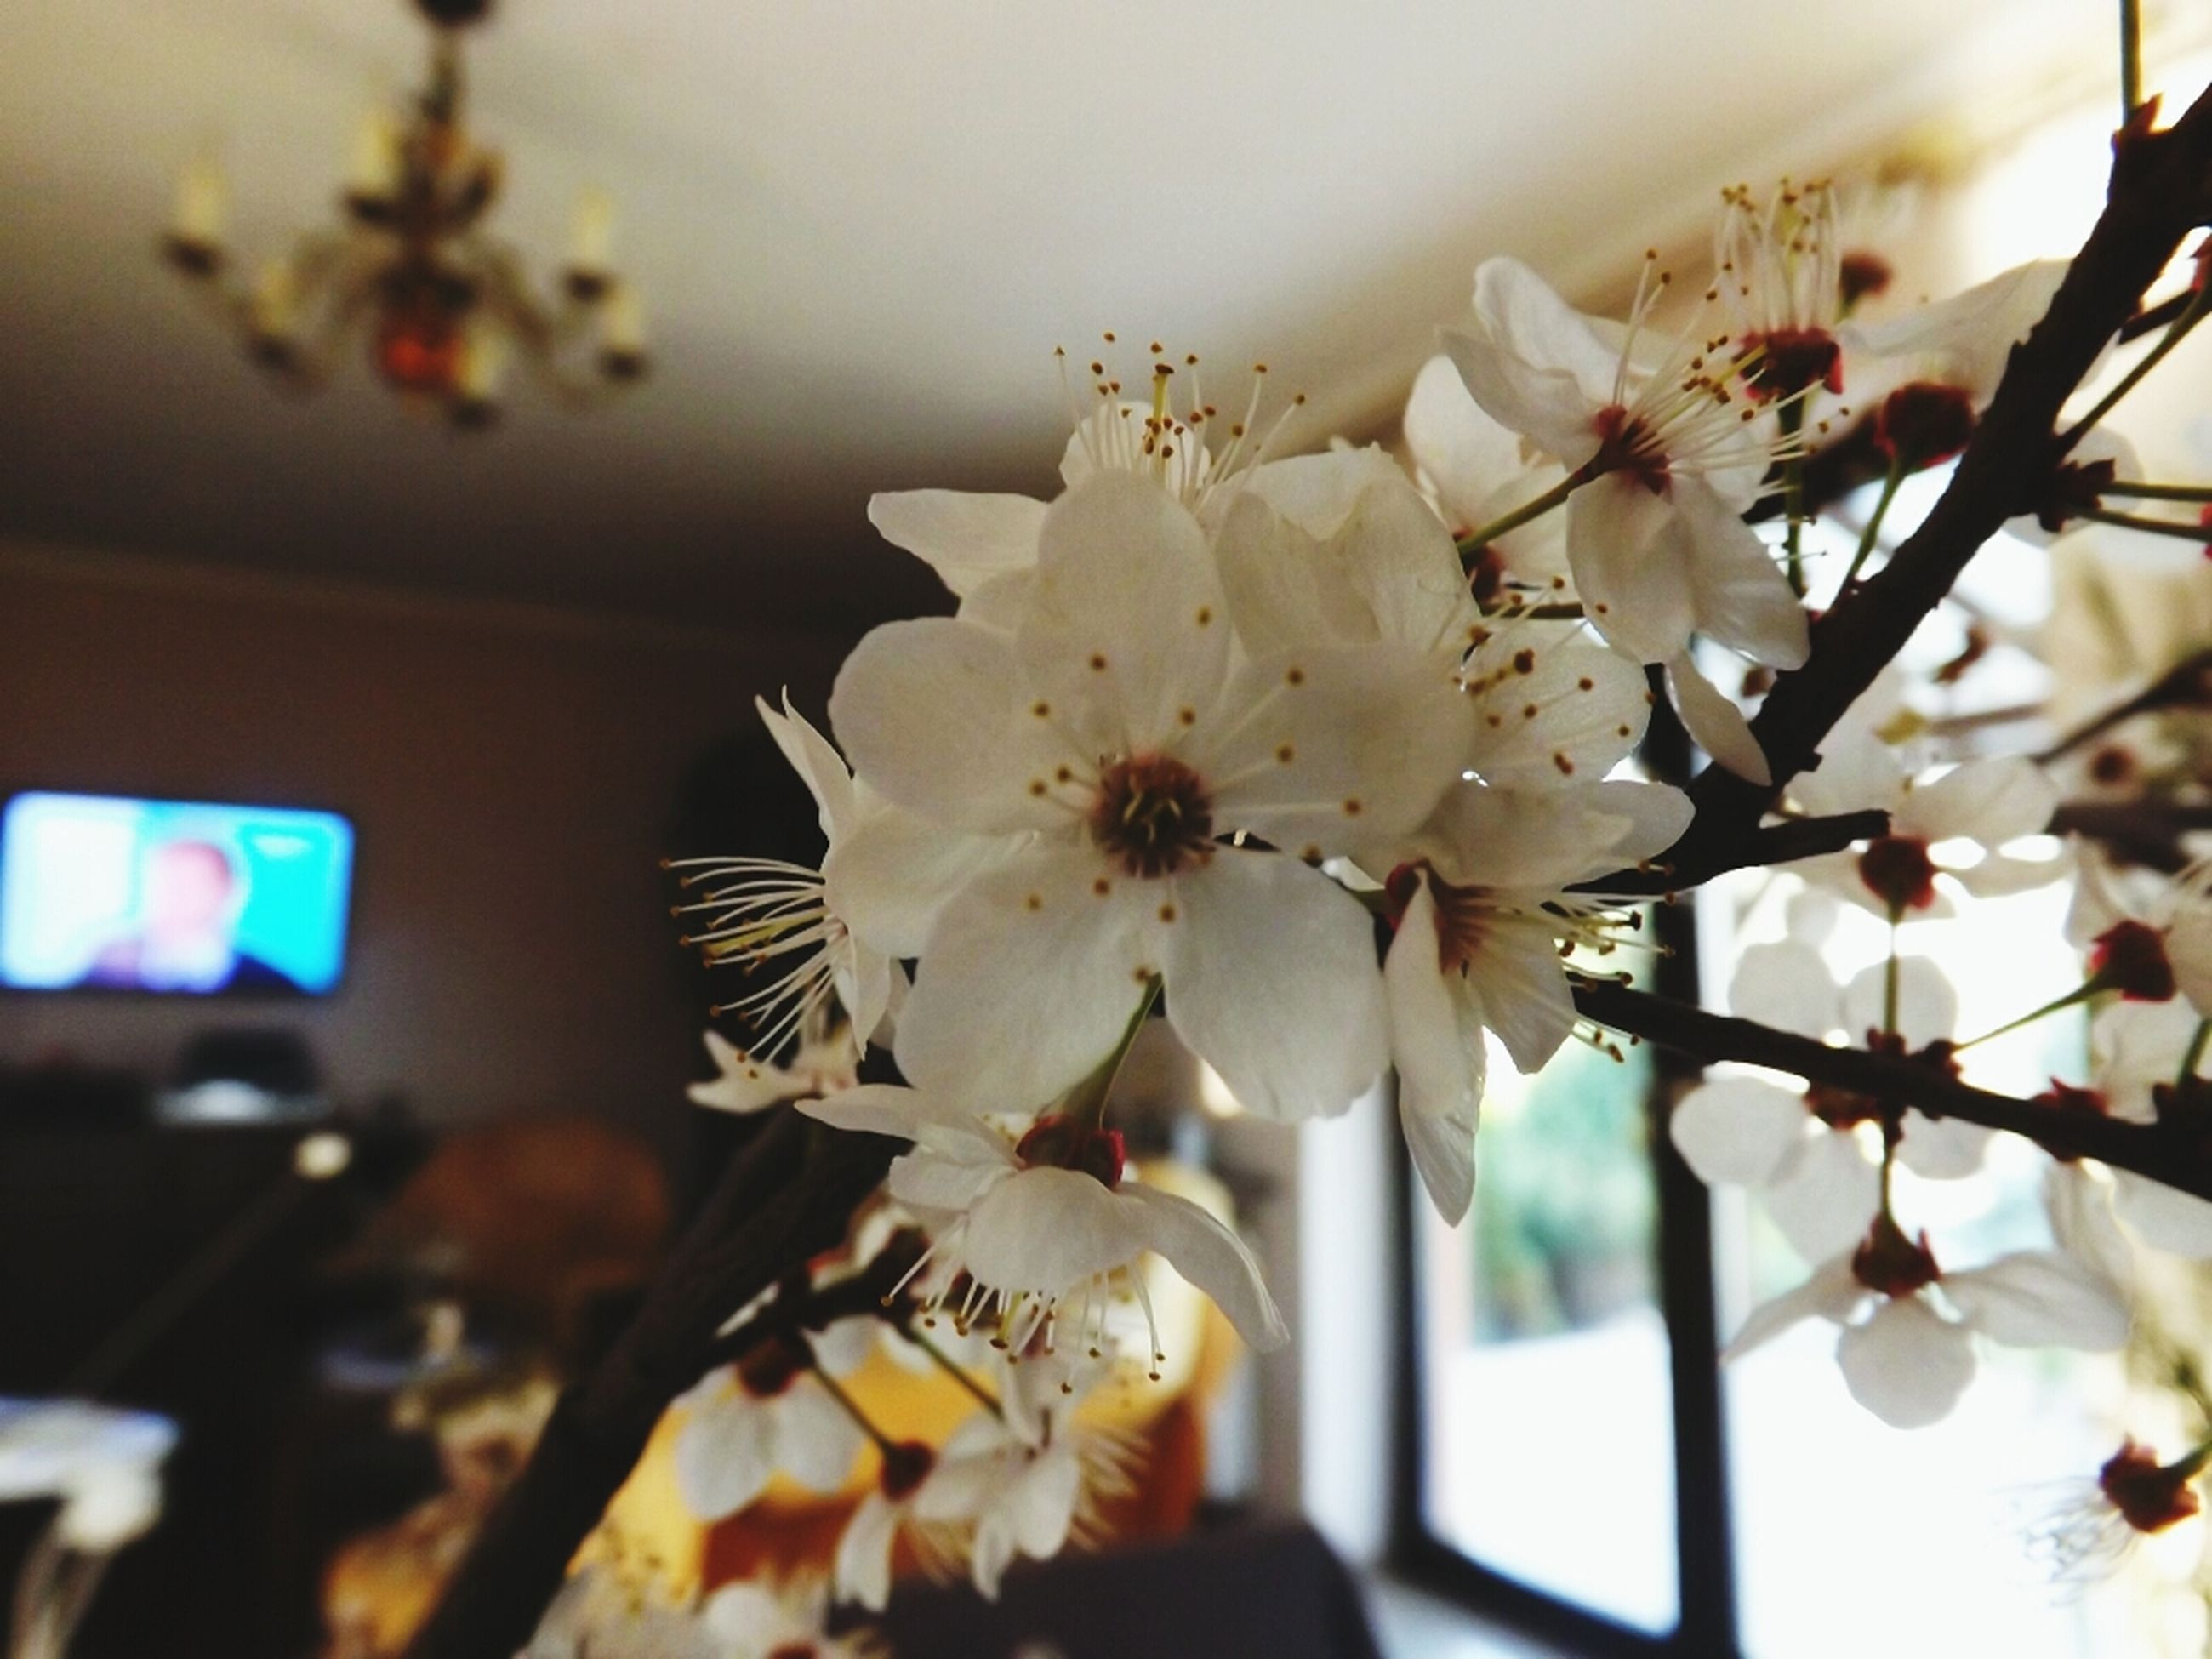 flower, fragility, freshness, petal, focus on foreground, white color, close-up, growth, flower head, blooming, nature, beauty in nature, blossom, indoors, branch, in bloom, selective focus, cherry blossom, low angle view, day